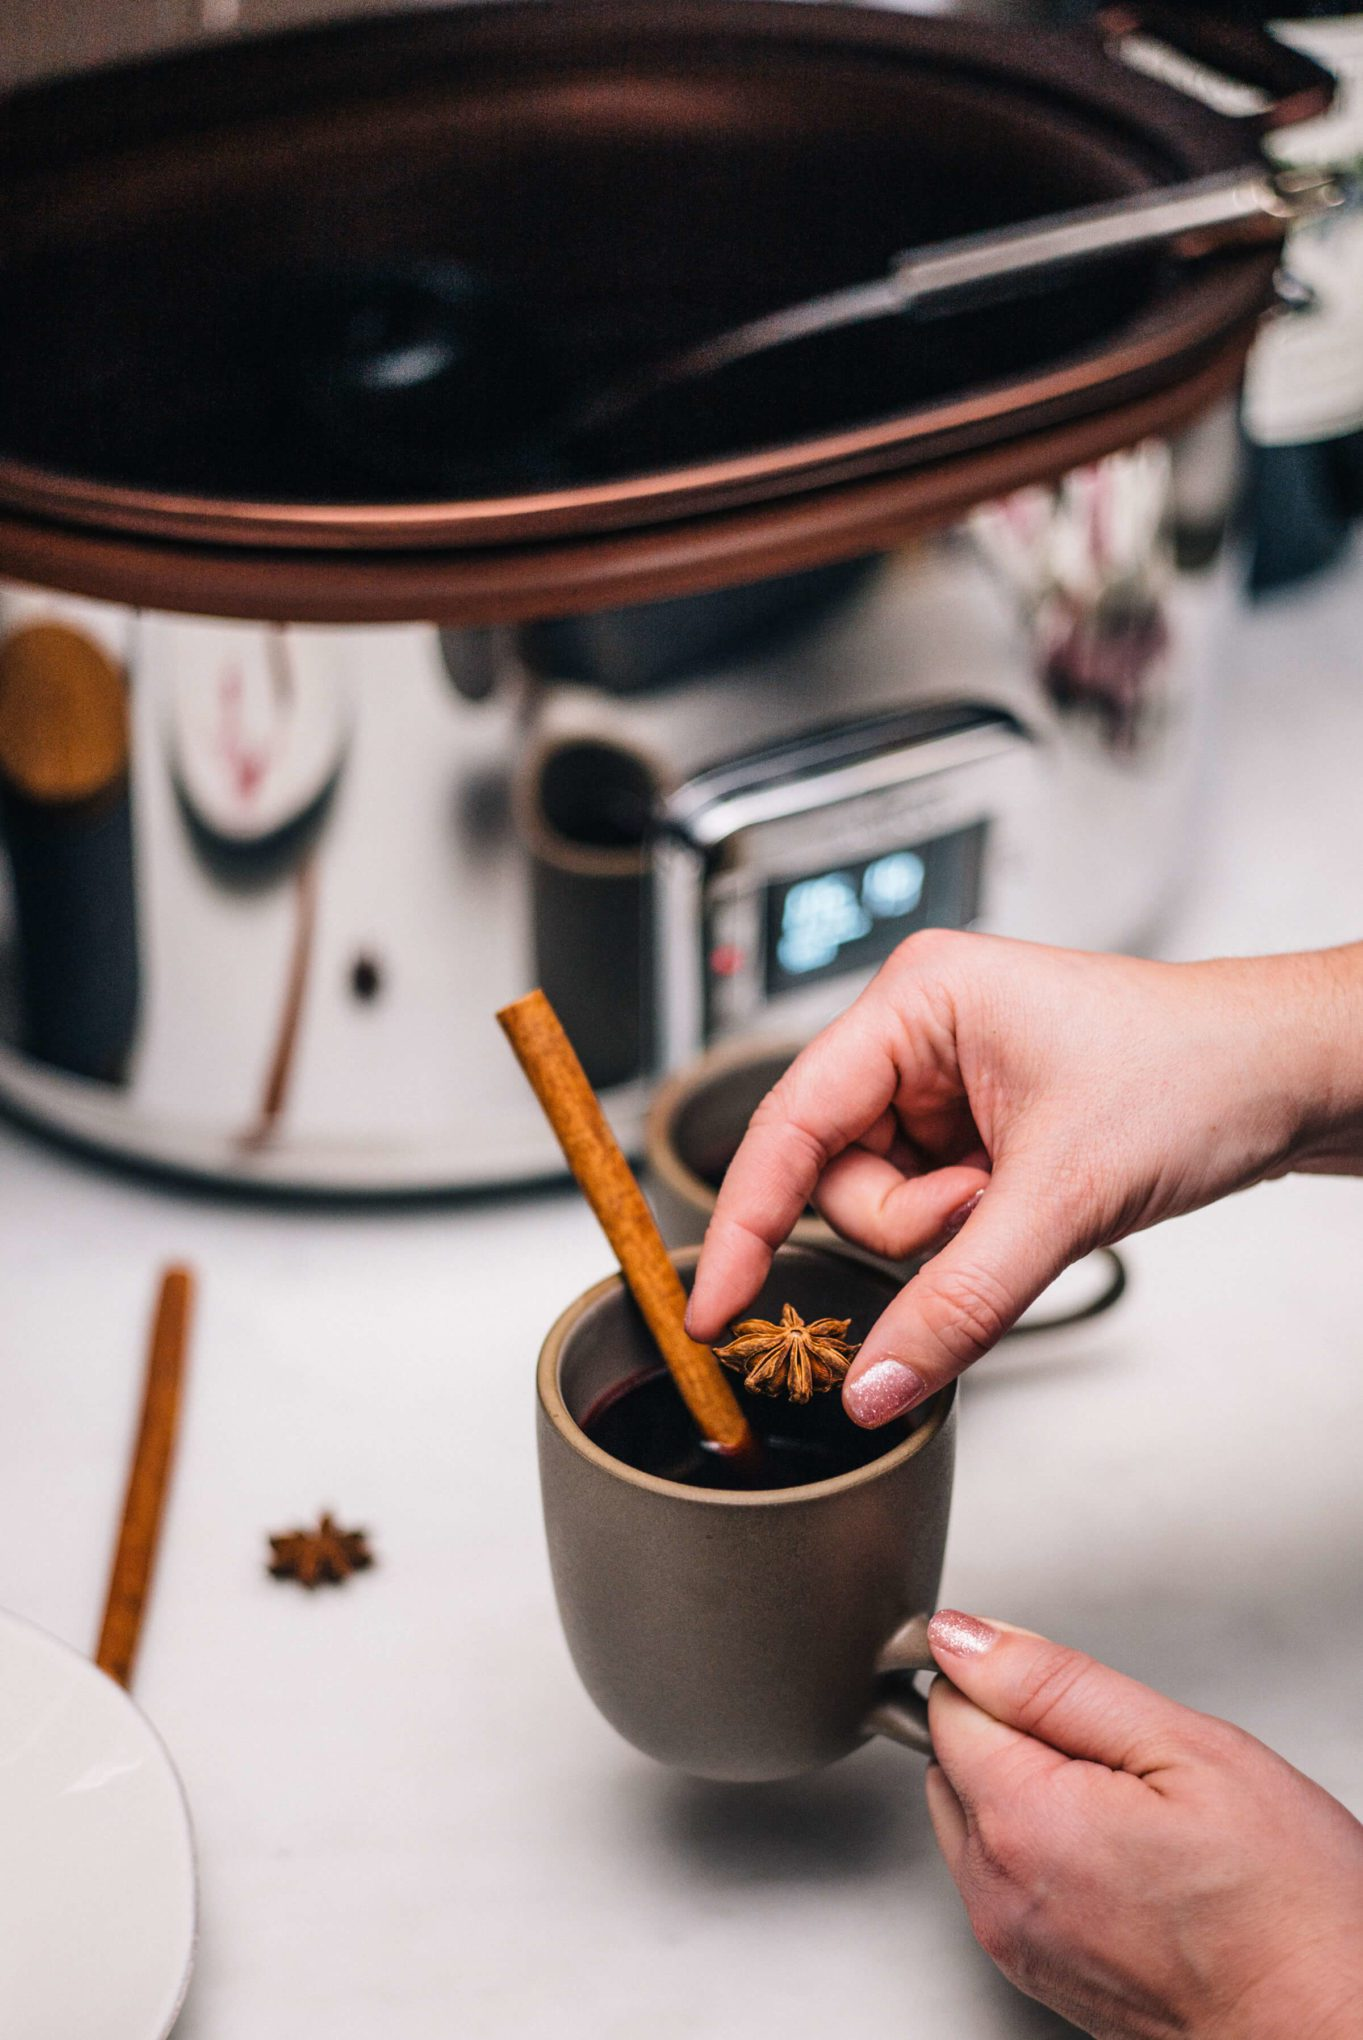 Making mulled wine in an All-Clad Gourmet Slow Cooker with The Taste SF